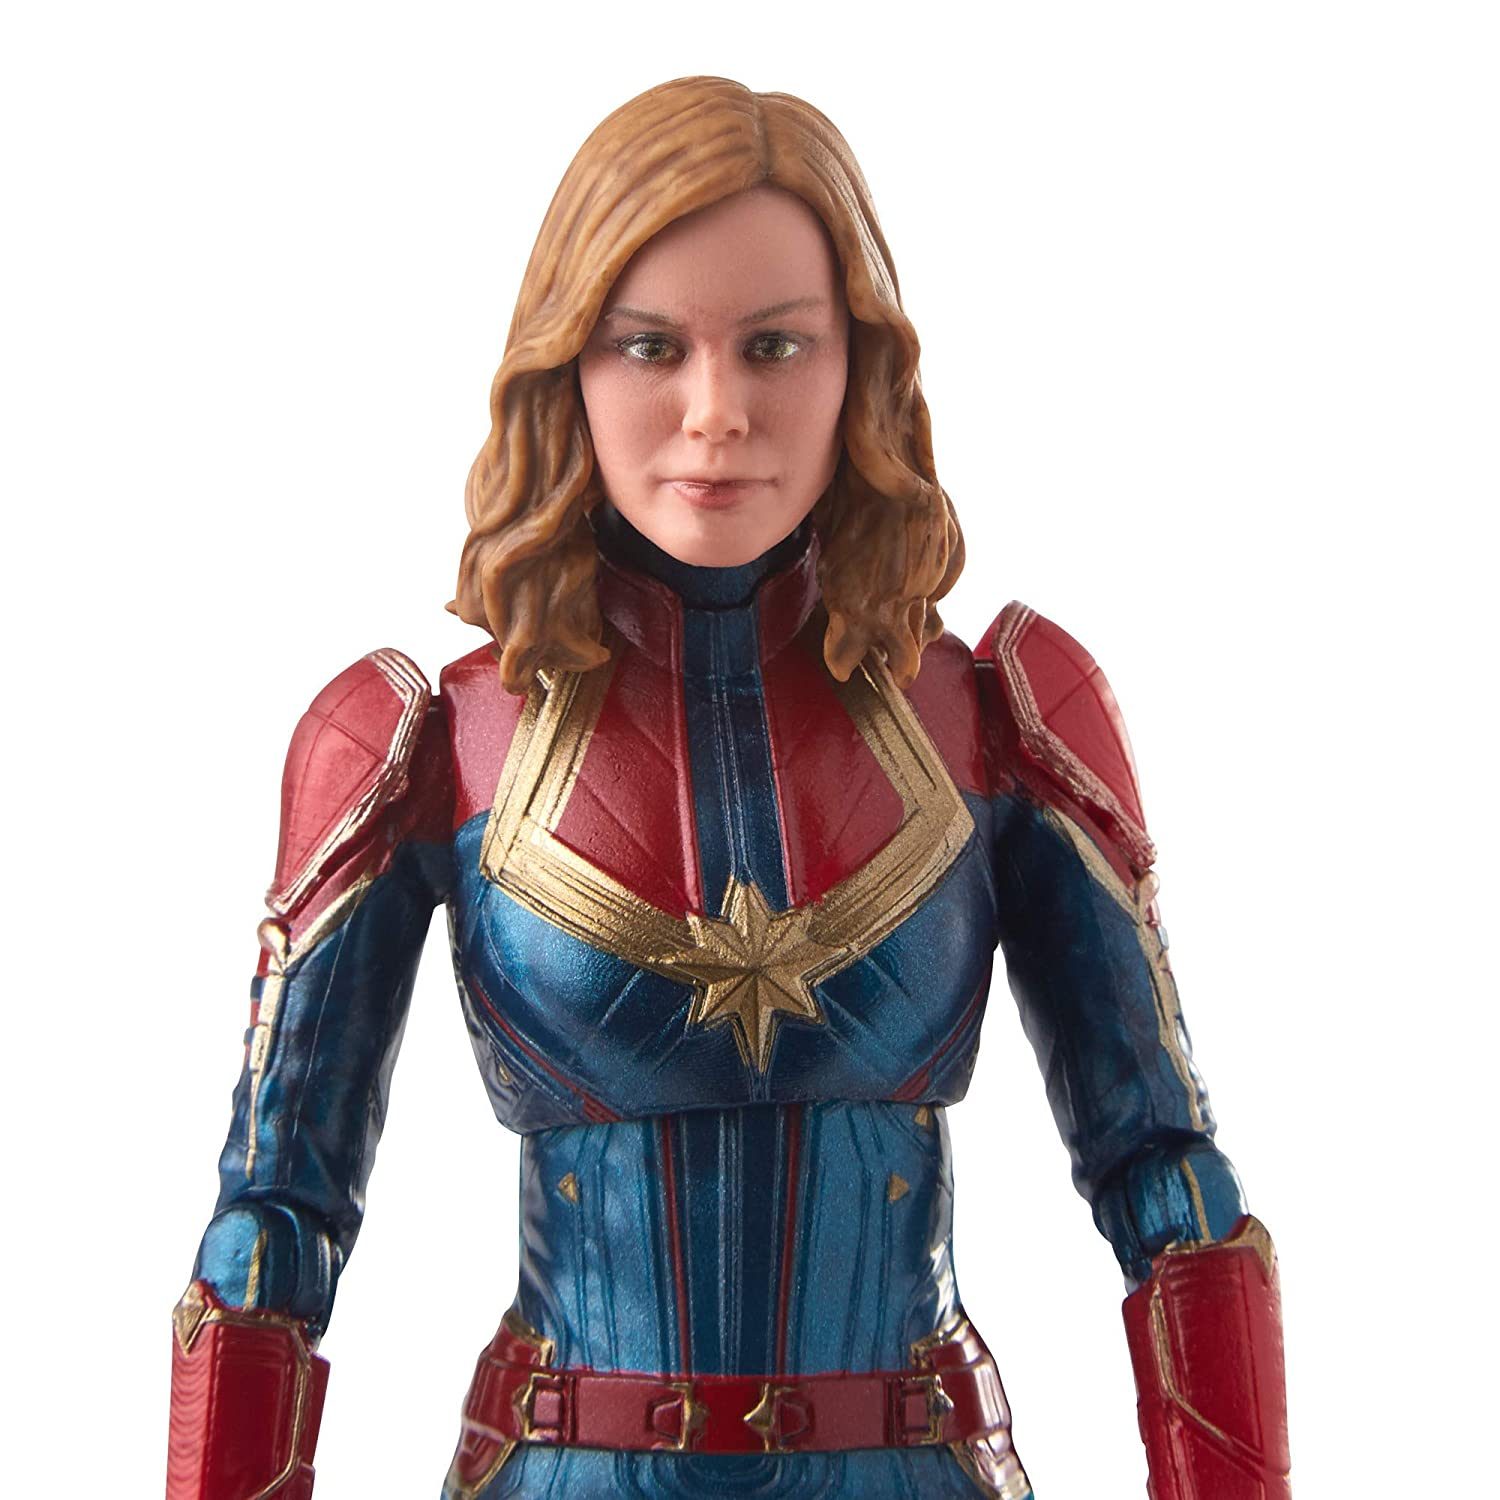 Marvel Captain Marvel  6-inch Legends Captain in Costume Figure for Collectors and Fans Hasbro E3885AS00 Kids